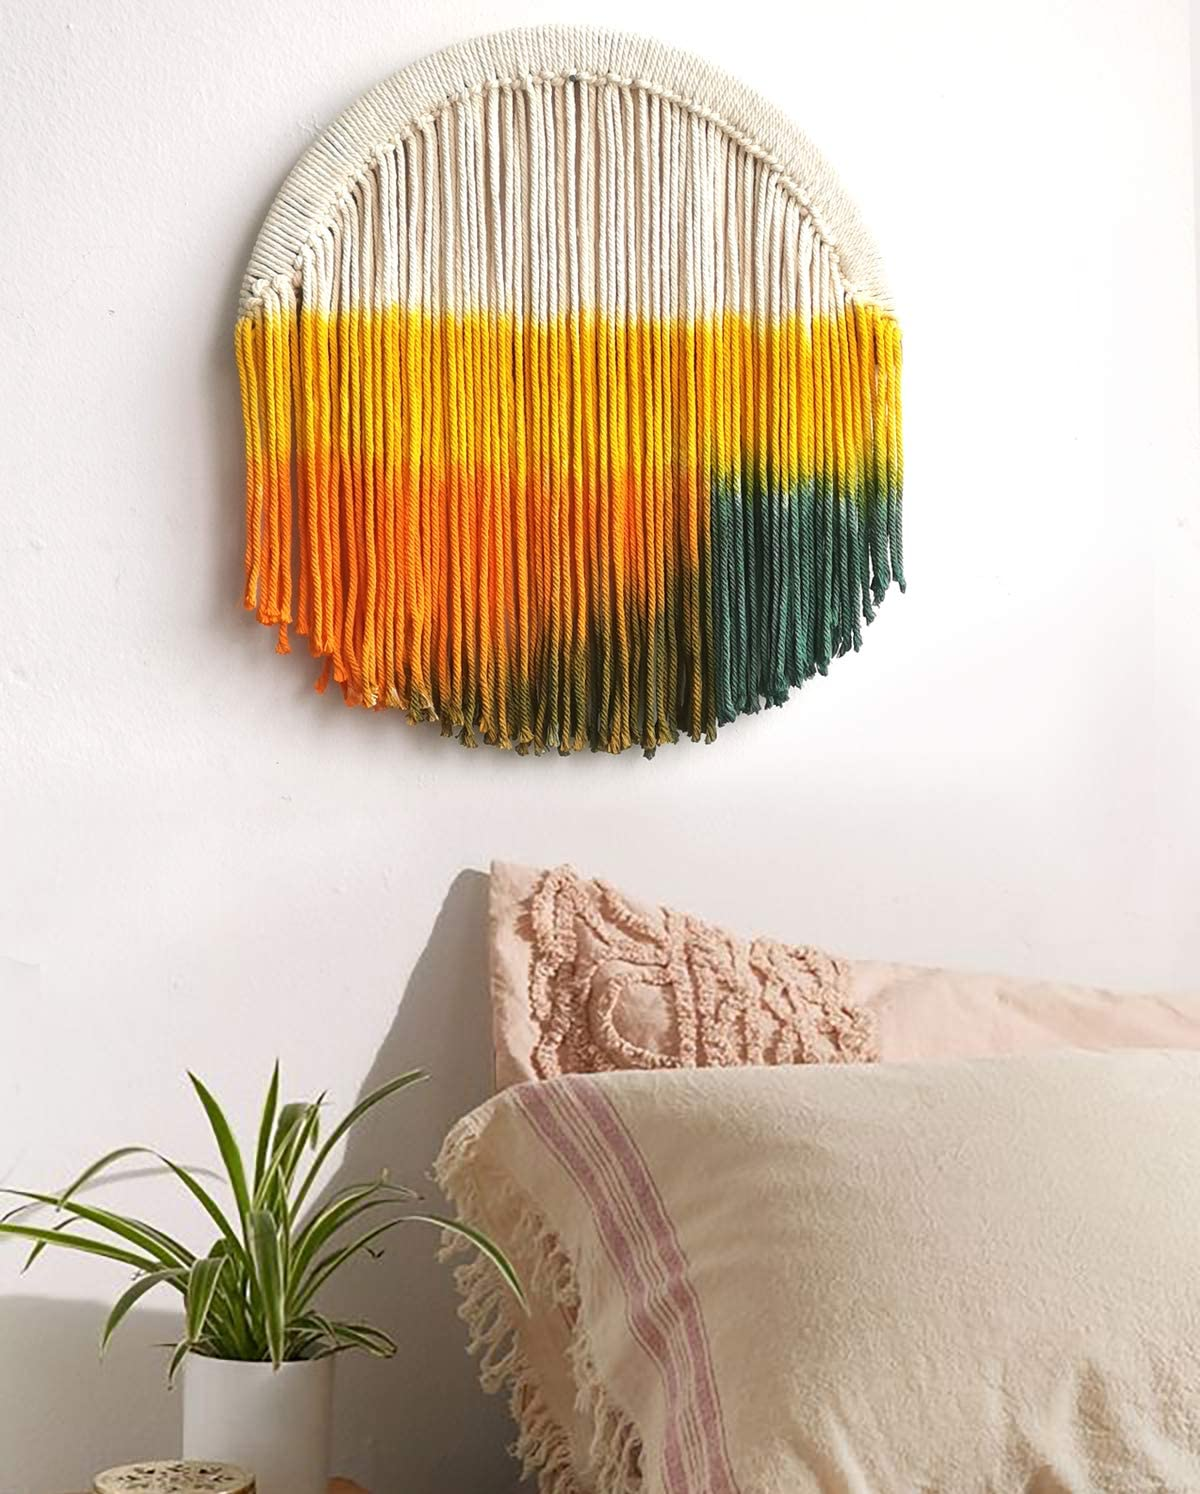 FLBER Macrame Wall Hanging Dip Dyed Circle Hoop Yarn Tapestry Gypsy Home D cor,13.7 Diameter